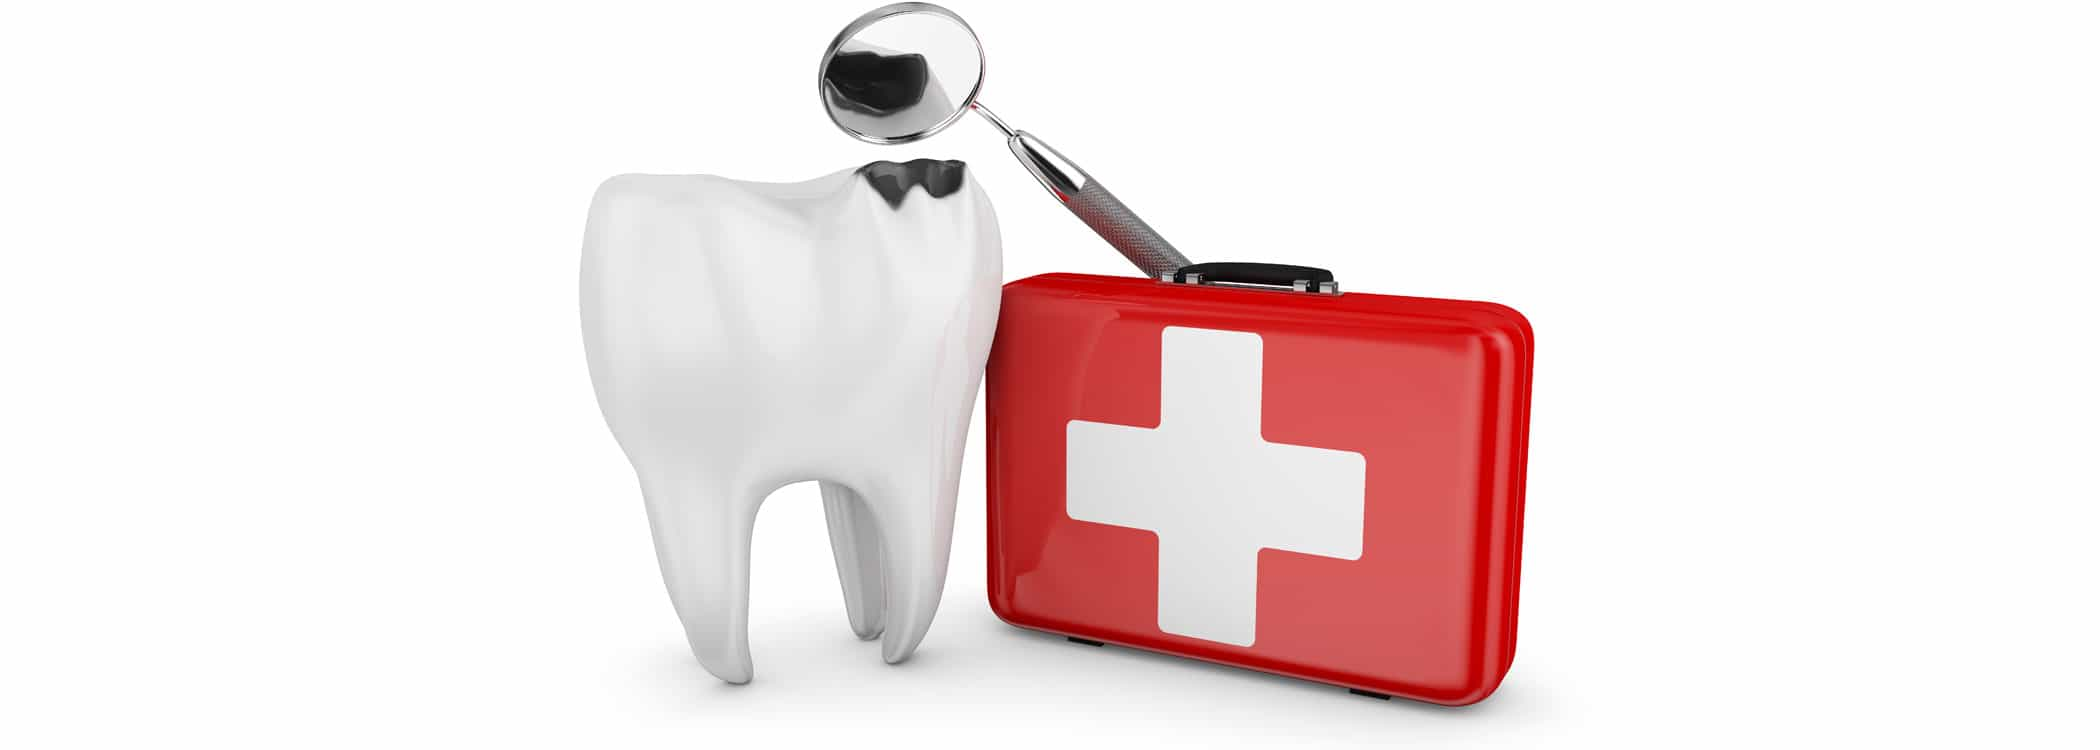 Dental Emergency - image of Tooth, first aid kit, and magnifier.